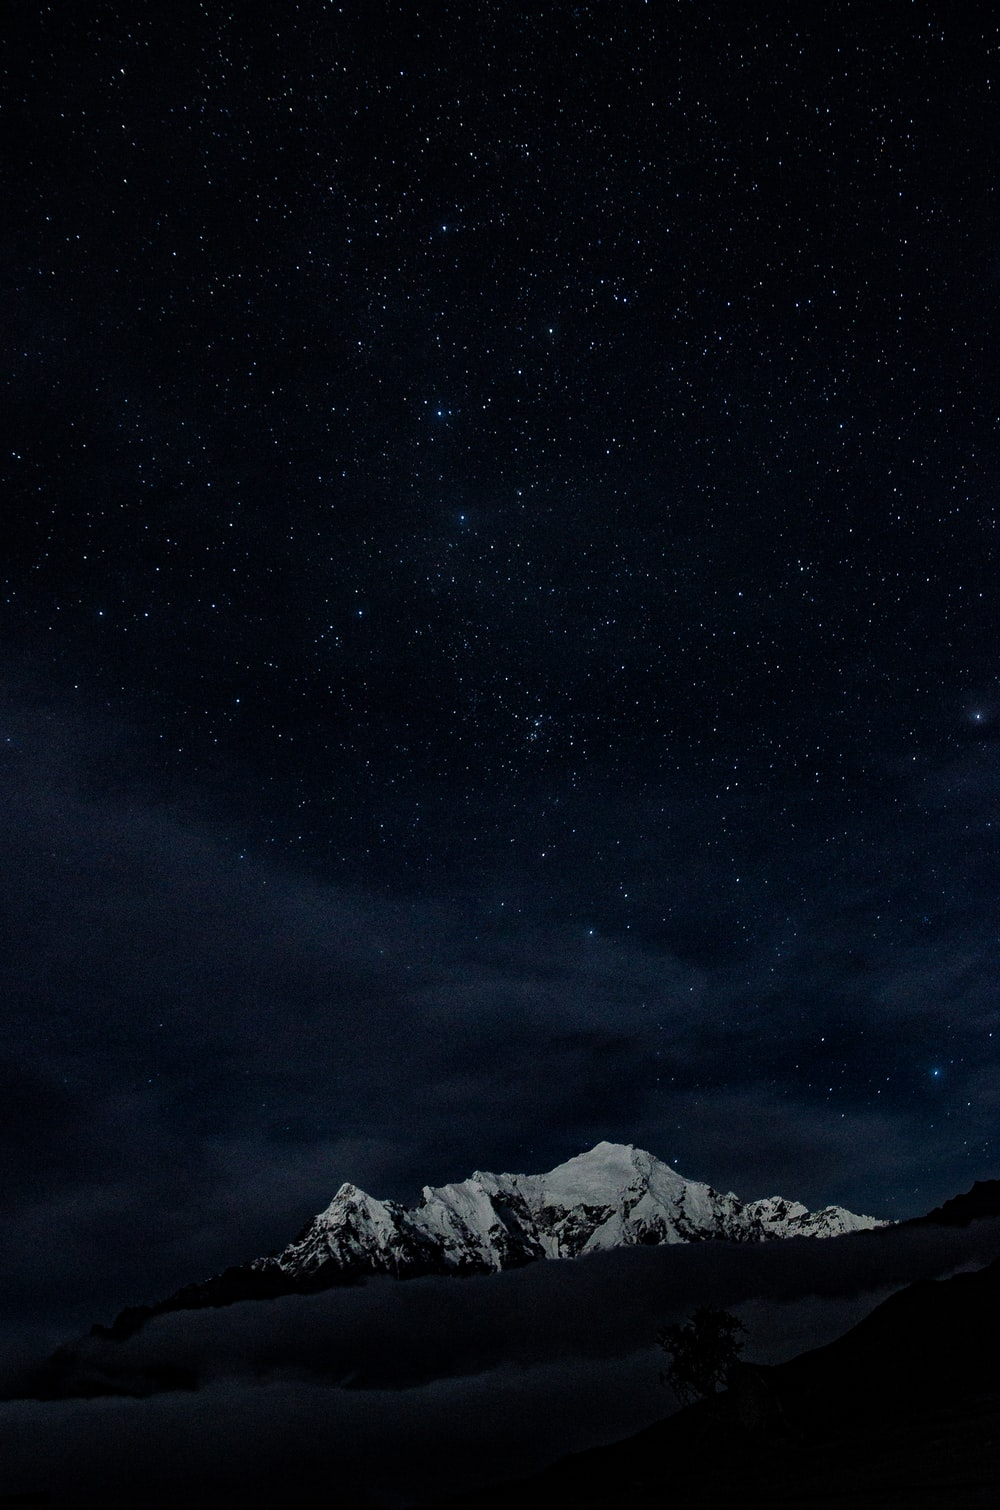 glacier mountain under starry night